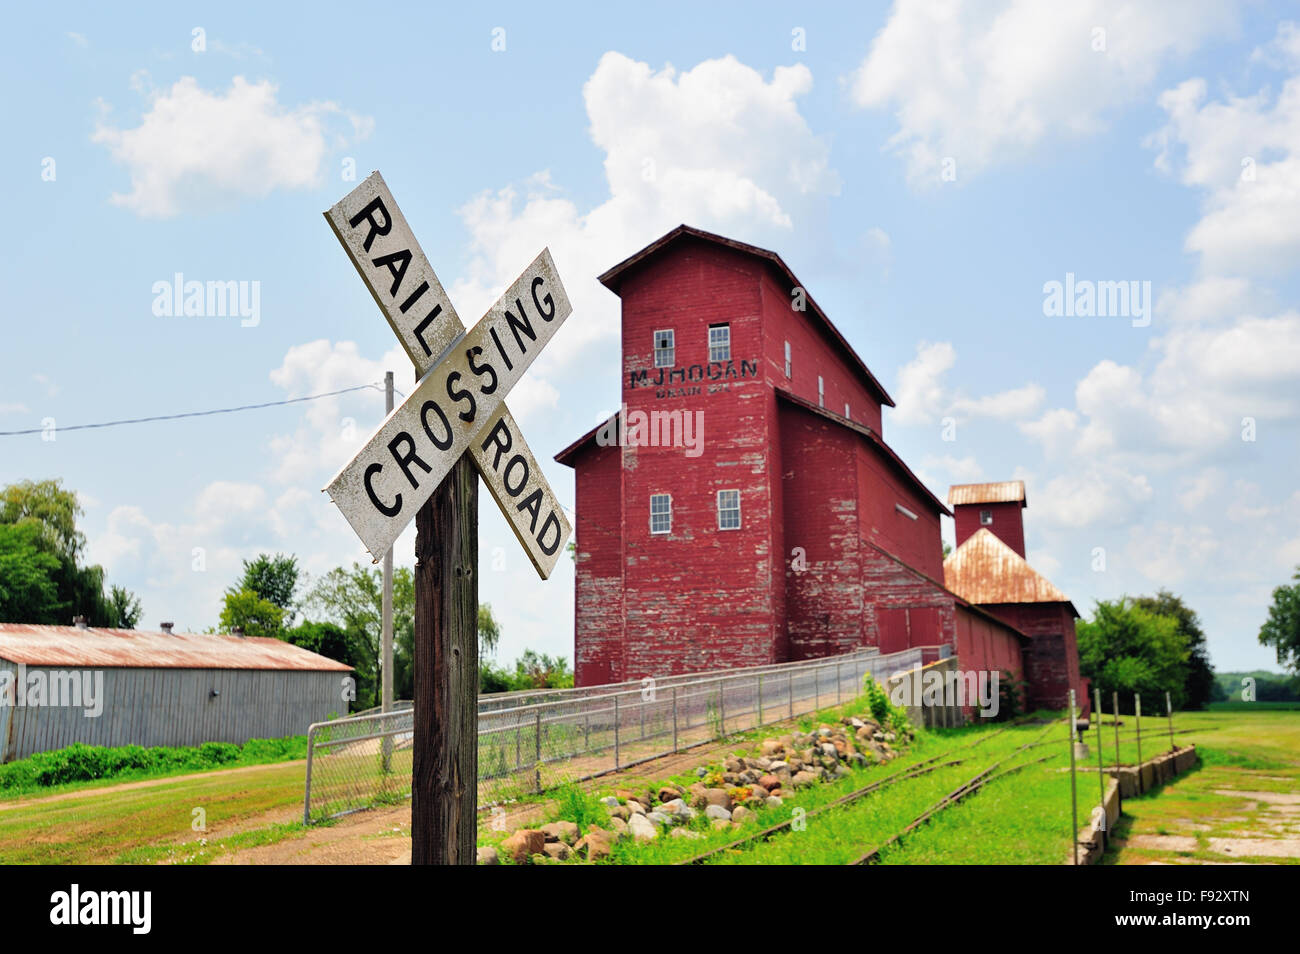 A vintage railroad crossing warning sign matches the age and appearance of the venerable grain elevator at a railroad - Stock Image